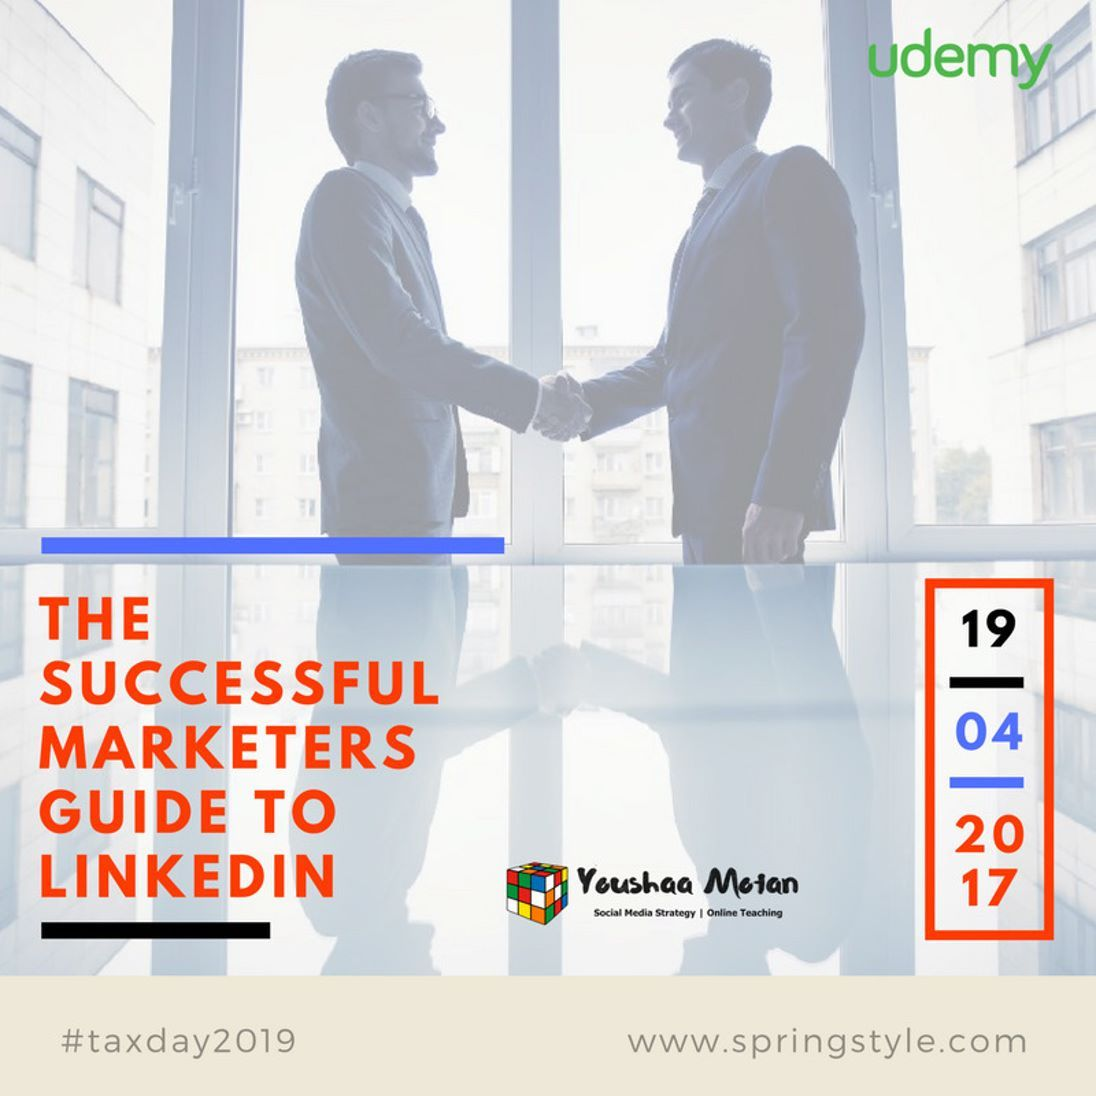 Join me in the launch promotion of my new Udemy workshop - The Successful Marketers Guide to Linkedin and get the $55 course for $10 on an early bird one-off launch price.Link in Bio to Enroll About the course:  In this class you will:  Increase brand awareness on Linkedin Influence perception Learn the 4-1-1 Method! Generate high-quality leads and Ultimately drive revenue with LinkedIn. Gain tips and practical strategies to tap into the power of Linkedin. We will cover organic and paid ads…